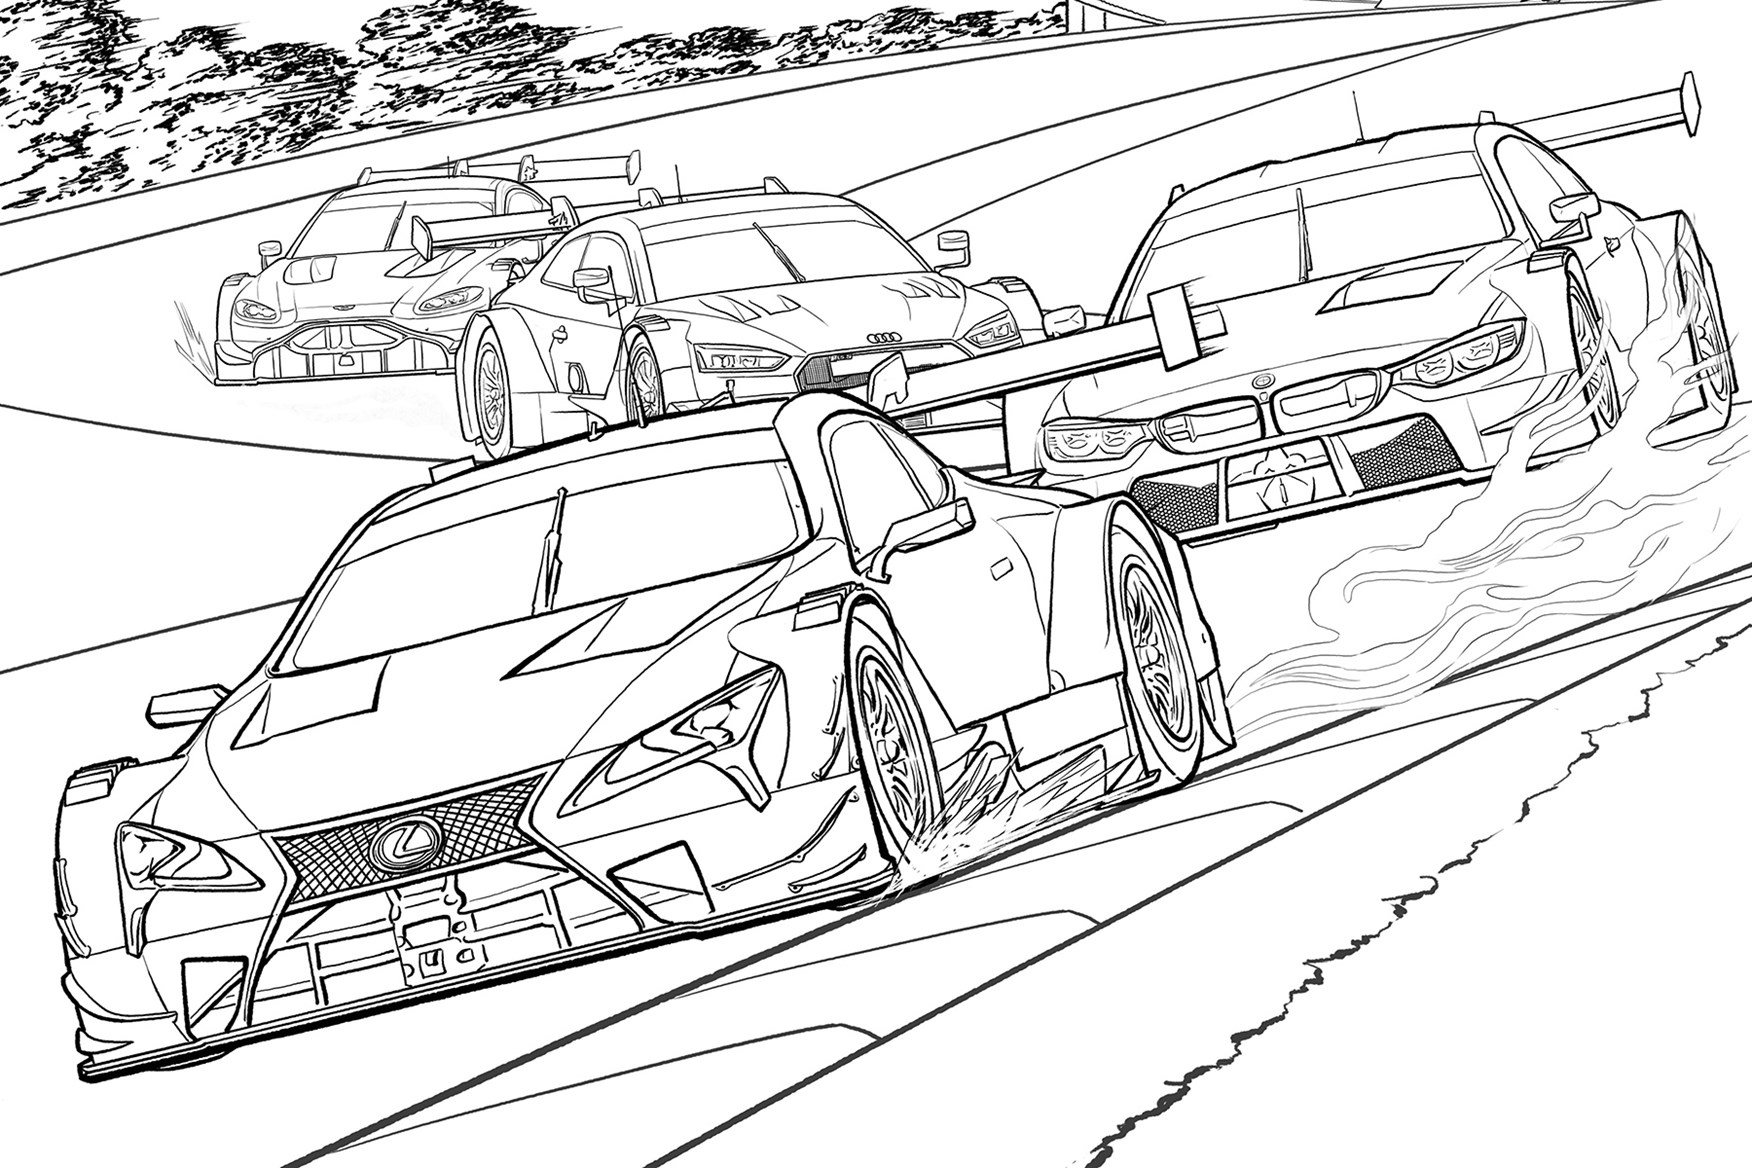 50 shades of cray-on: the best car colouring pages for